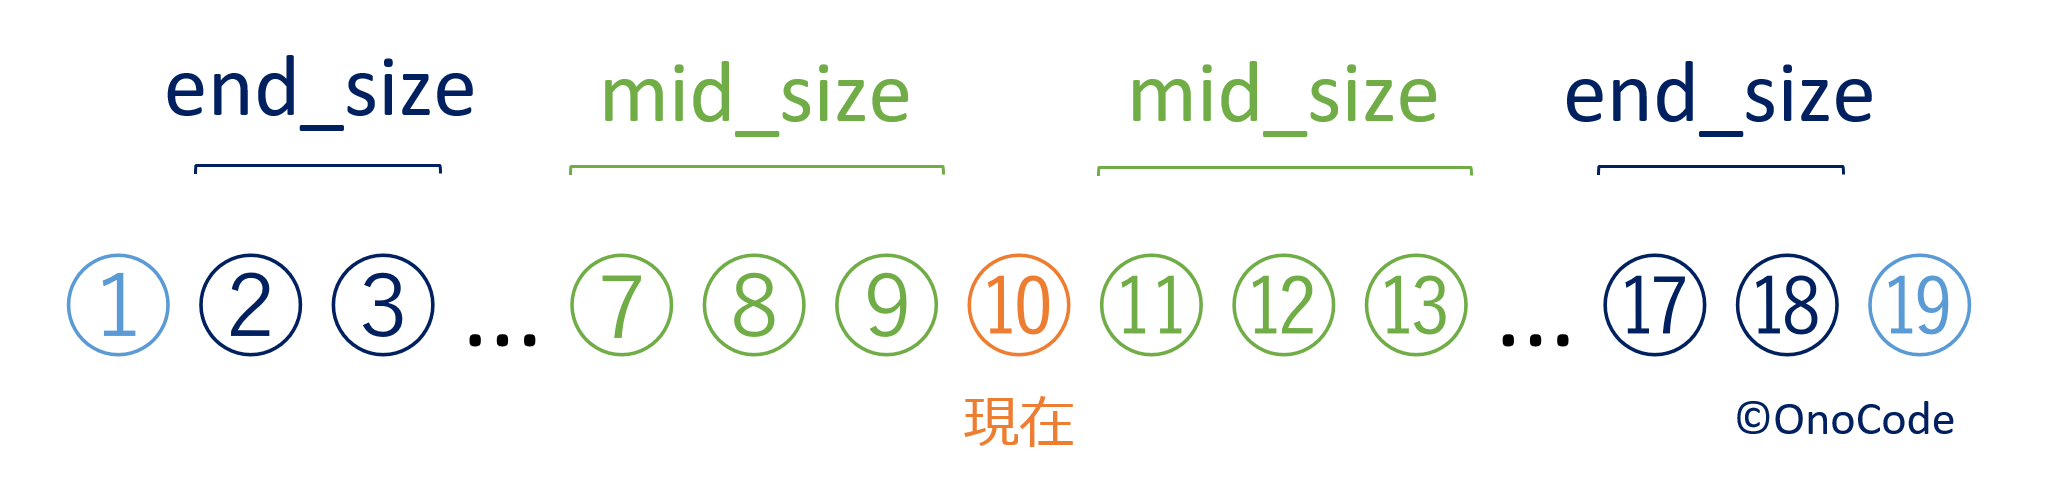 mid size とend sizeの説明